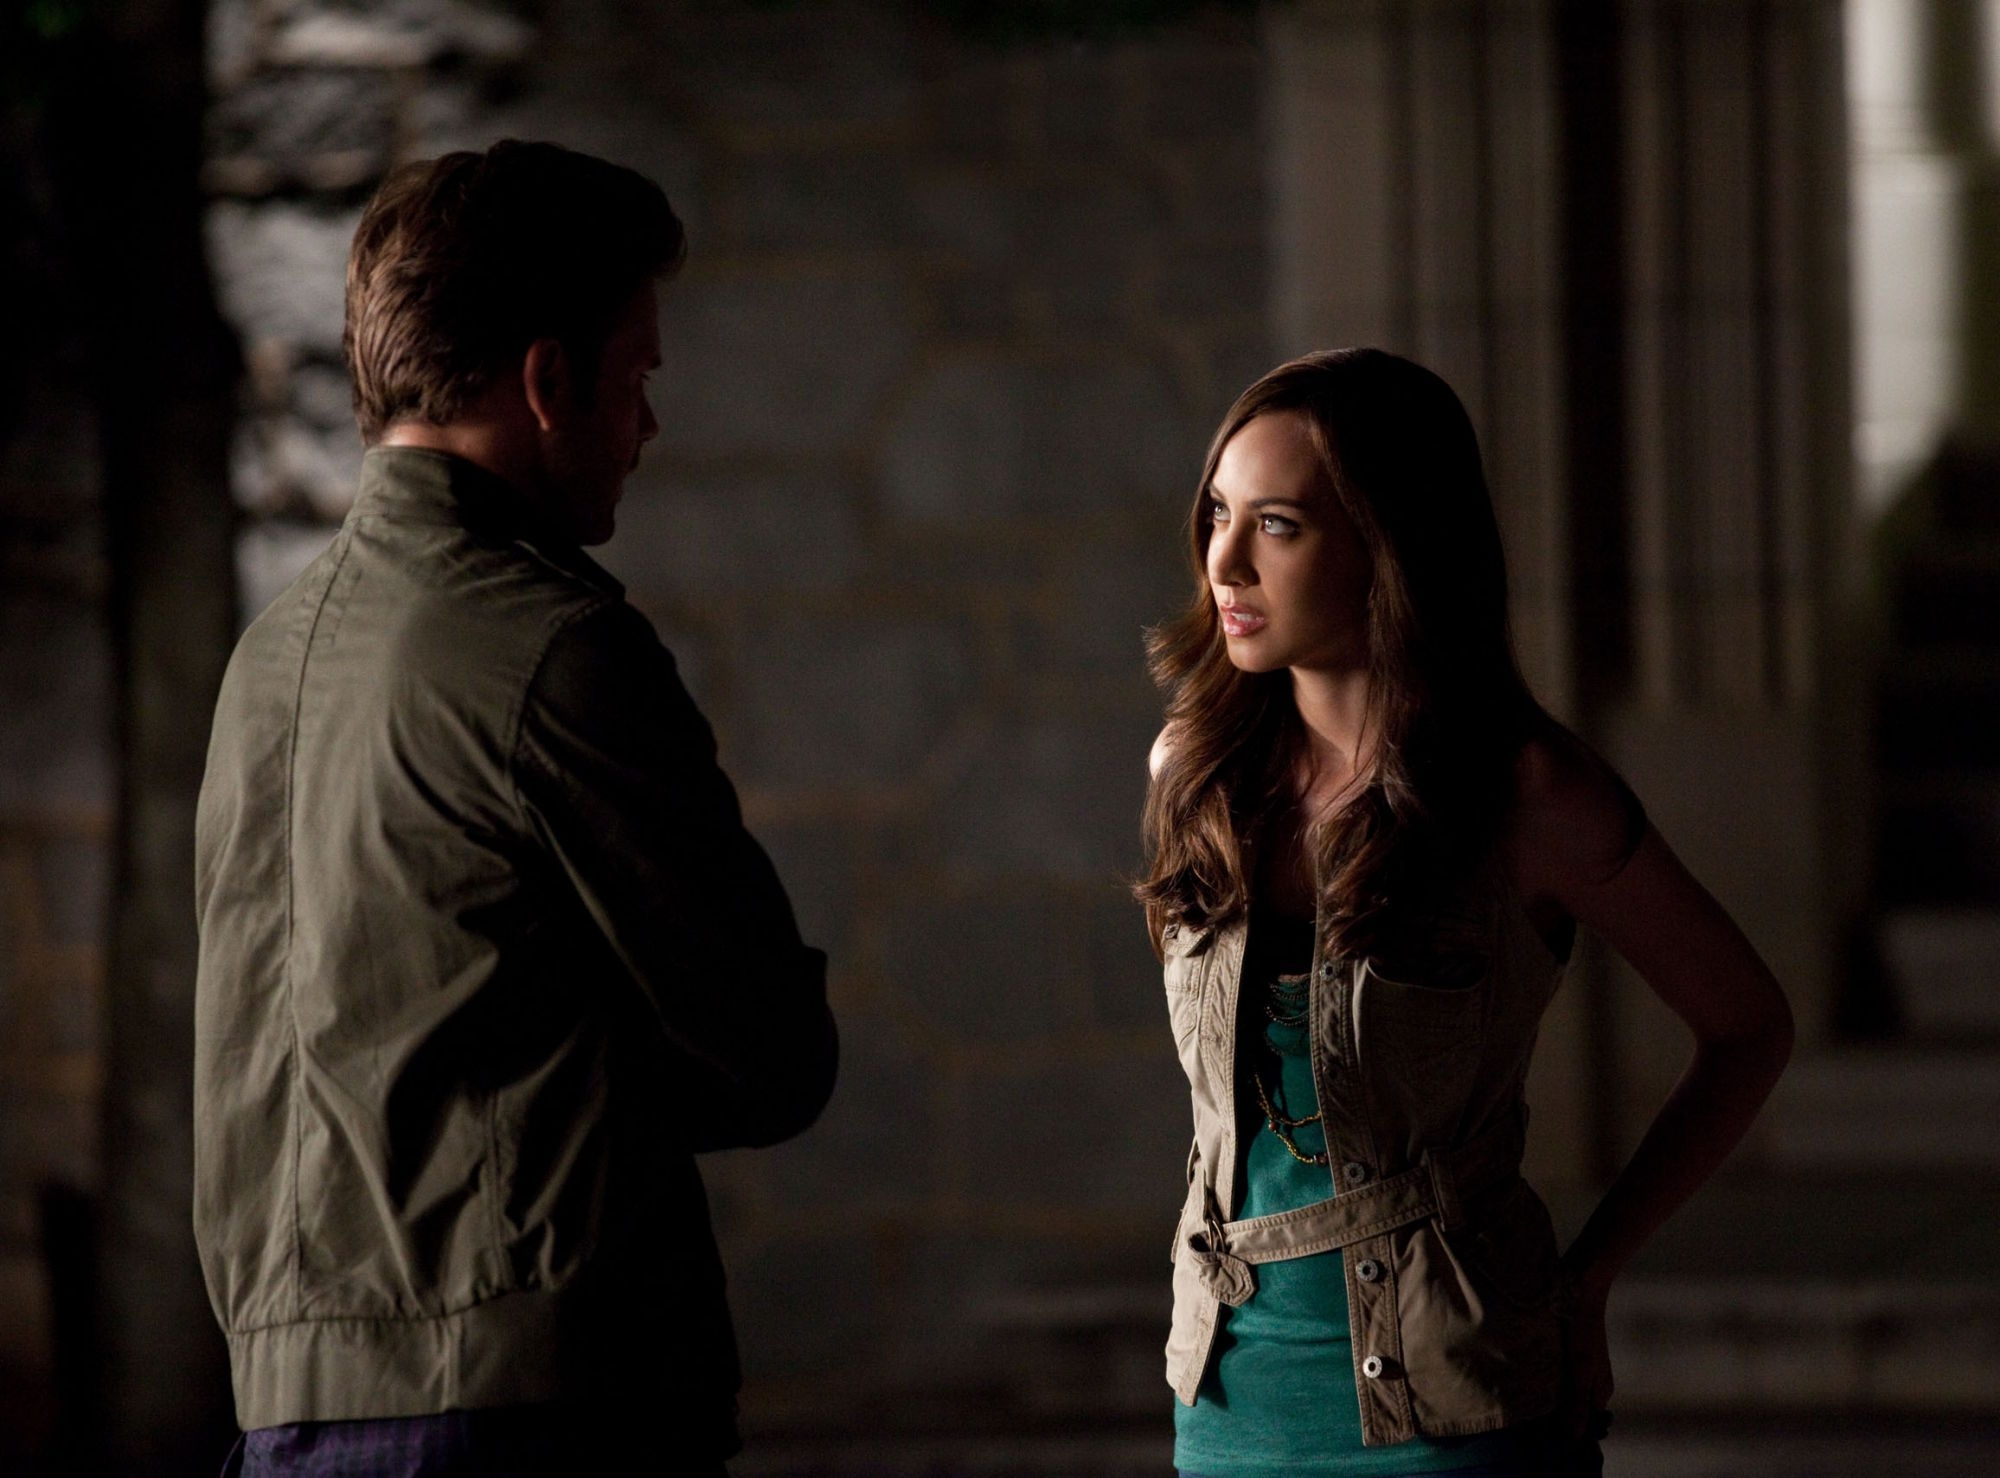 http://images4.fanpop.com/image/photos/15300000/Bad-Moon-Rising-2x03-the-vampire-diaries-tv-show-15391335-2000-1478.jpg